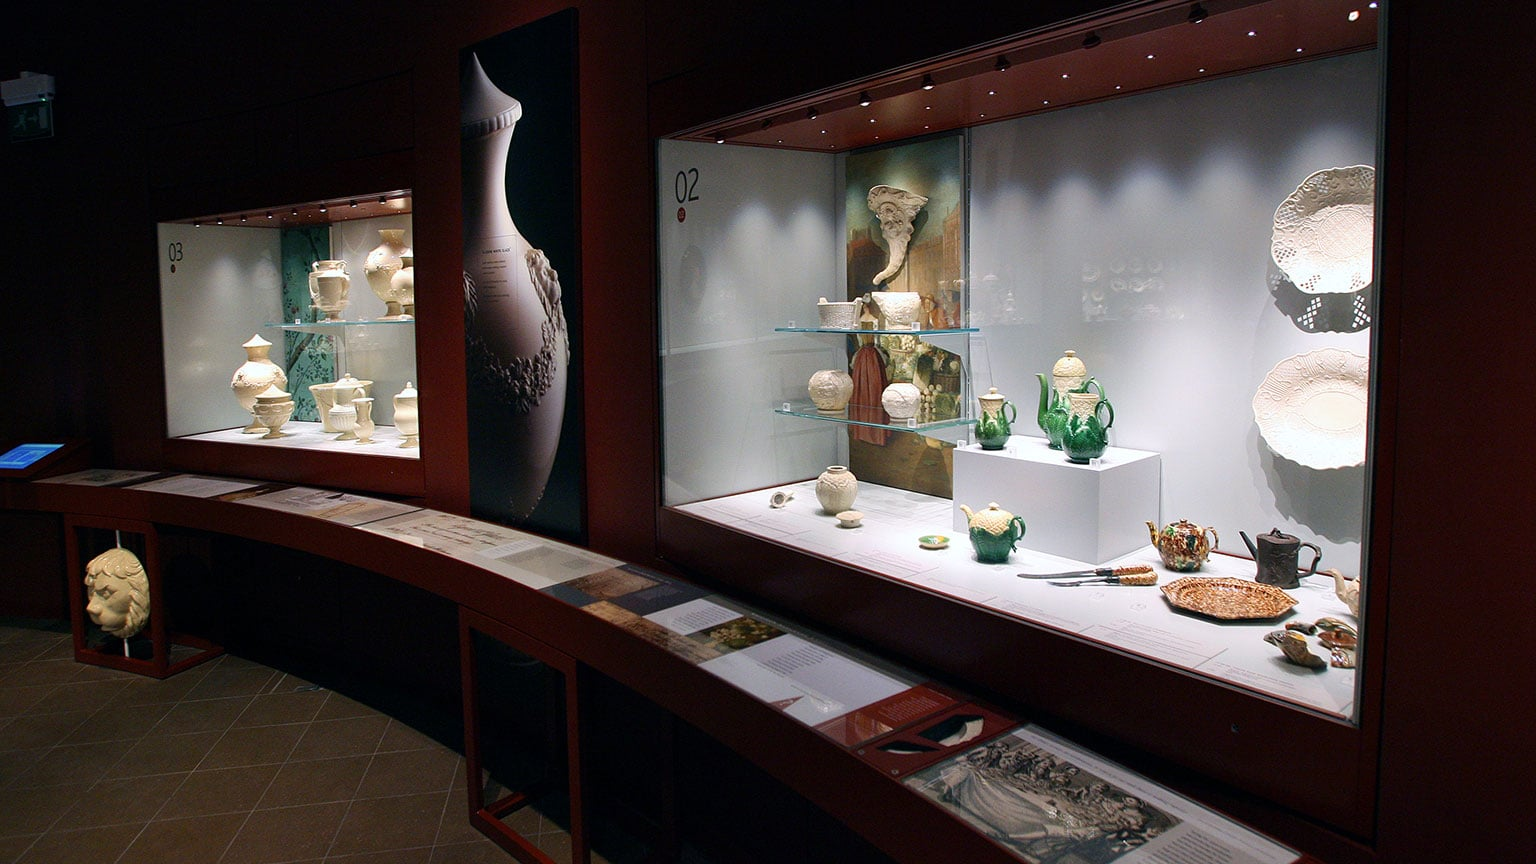 On display are many of the highlights of the collection